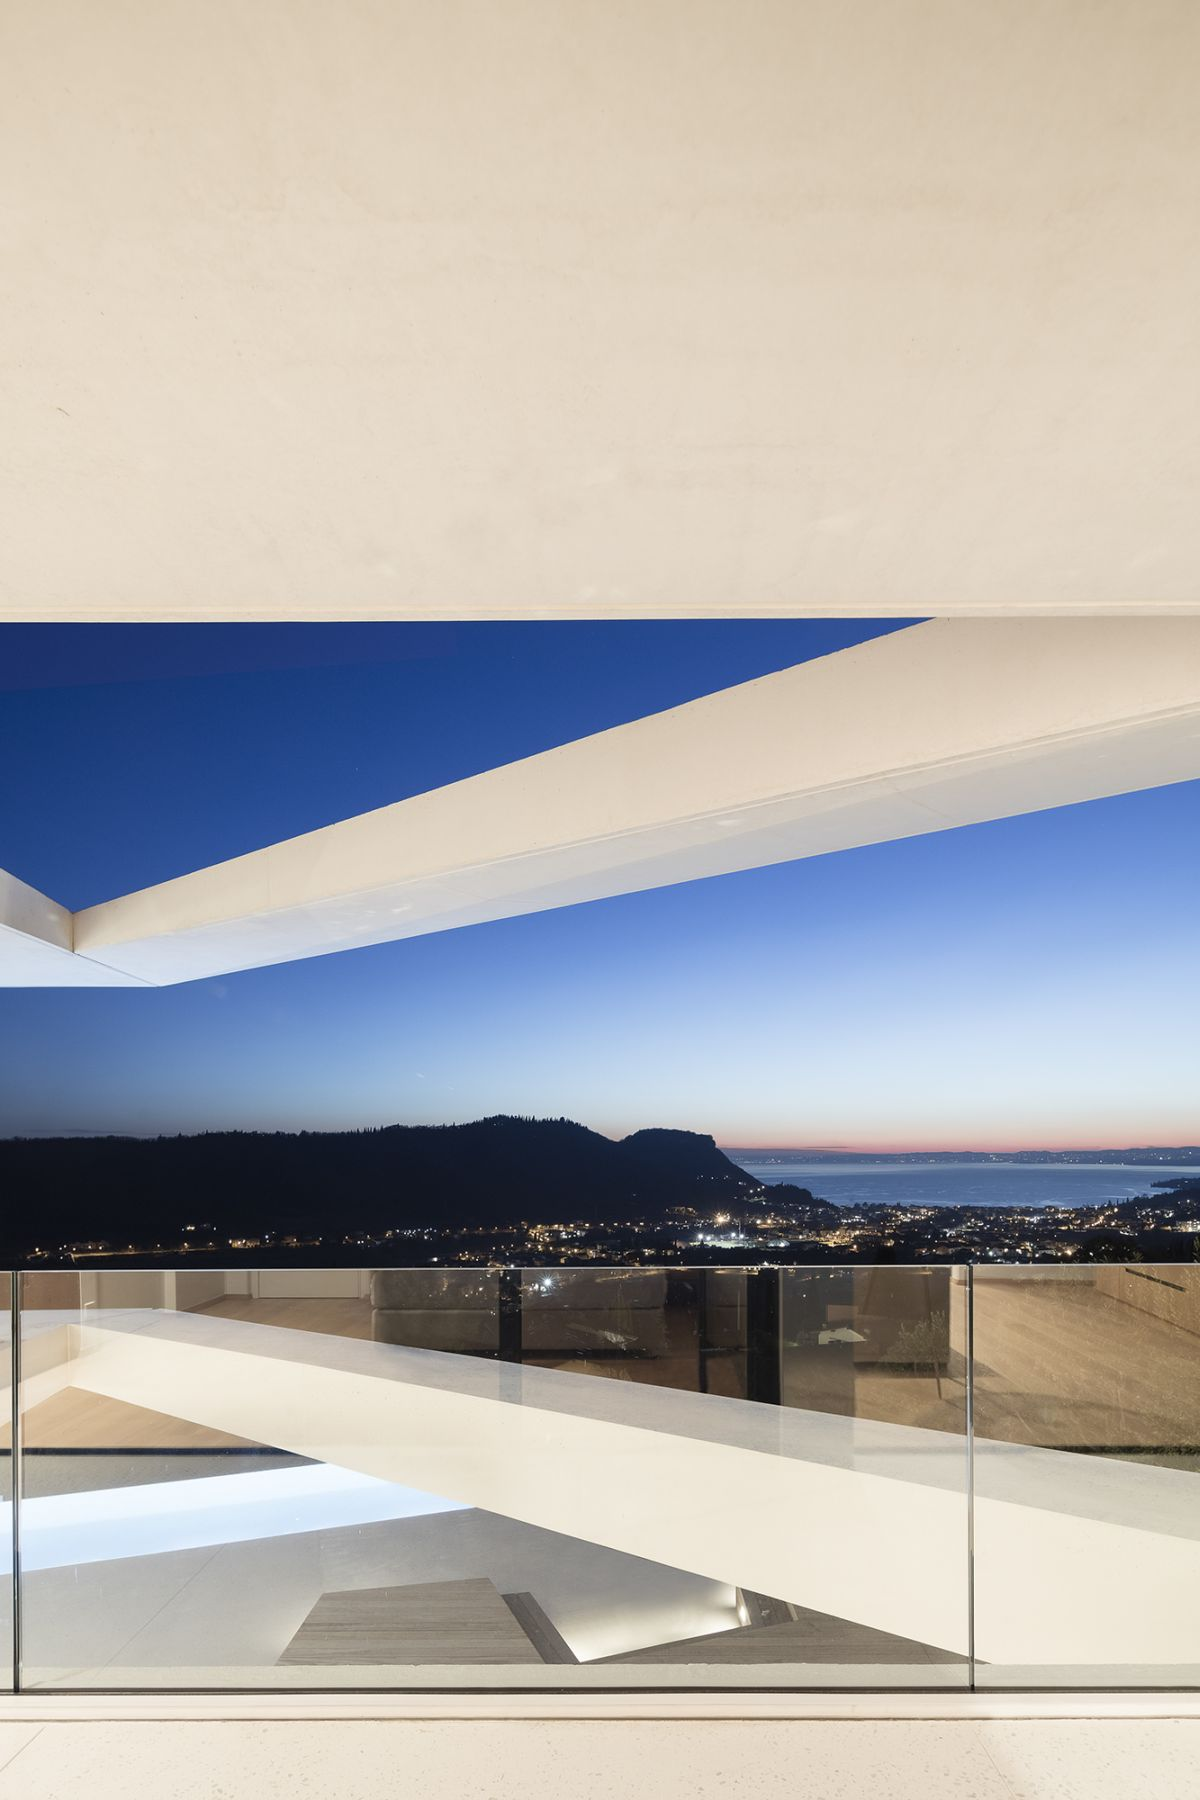 The cantilevered upper floor offers a beautiful view of the lake in the distance